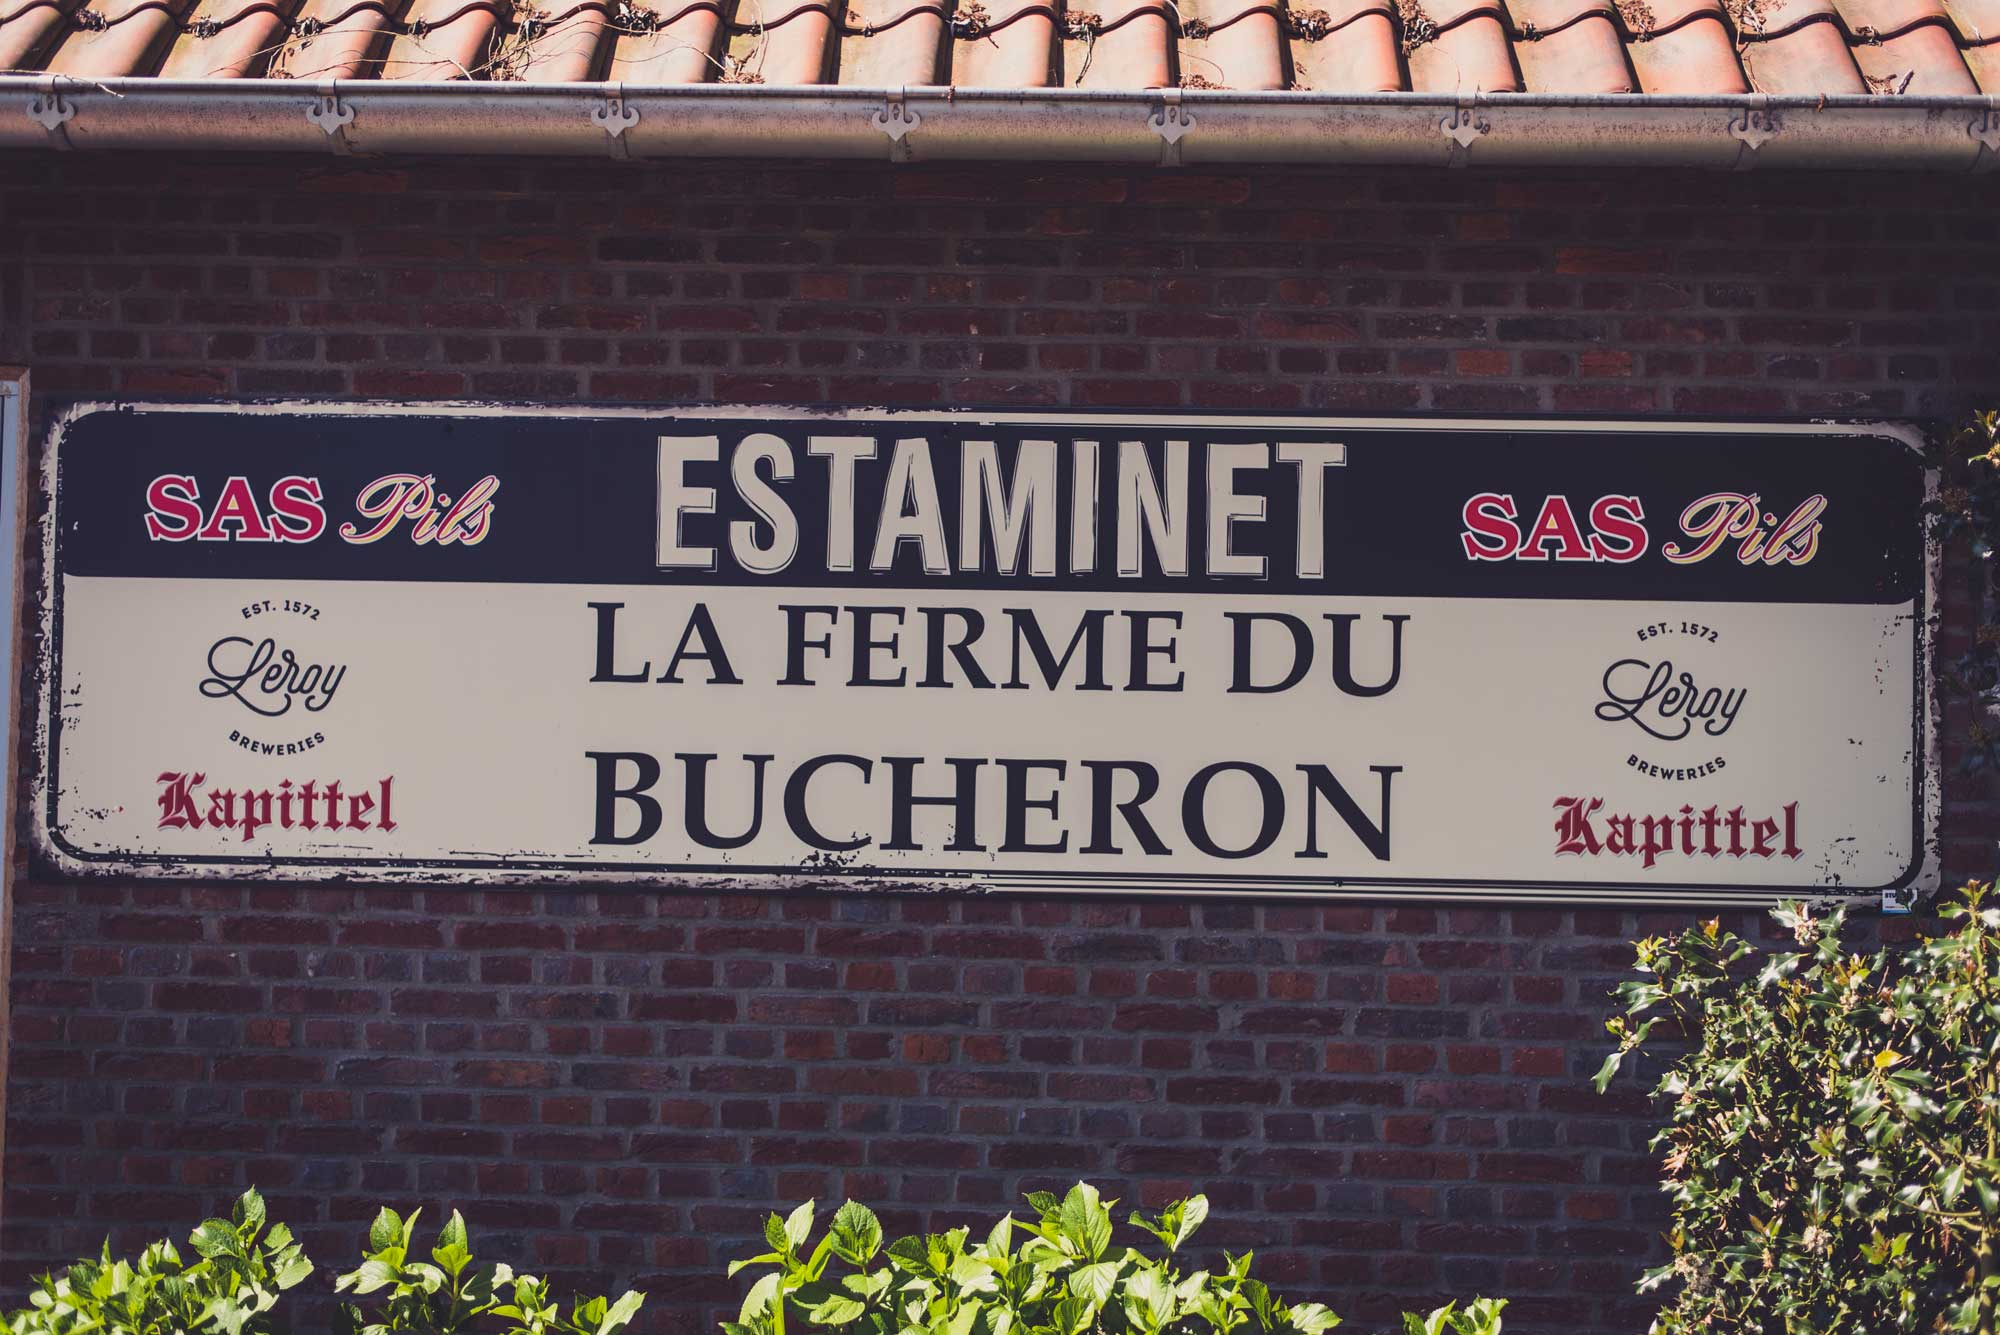 Estaminet La Ferme du Bucheron